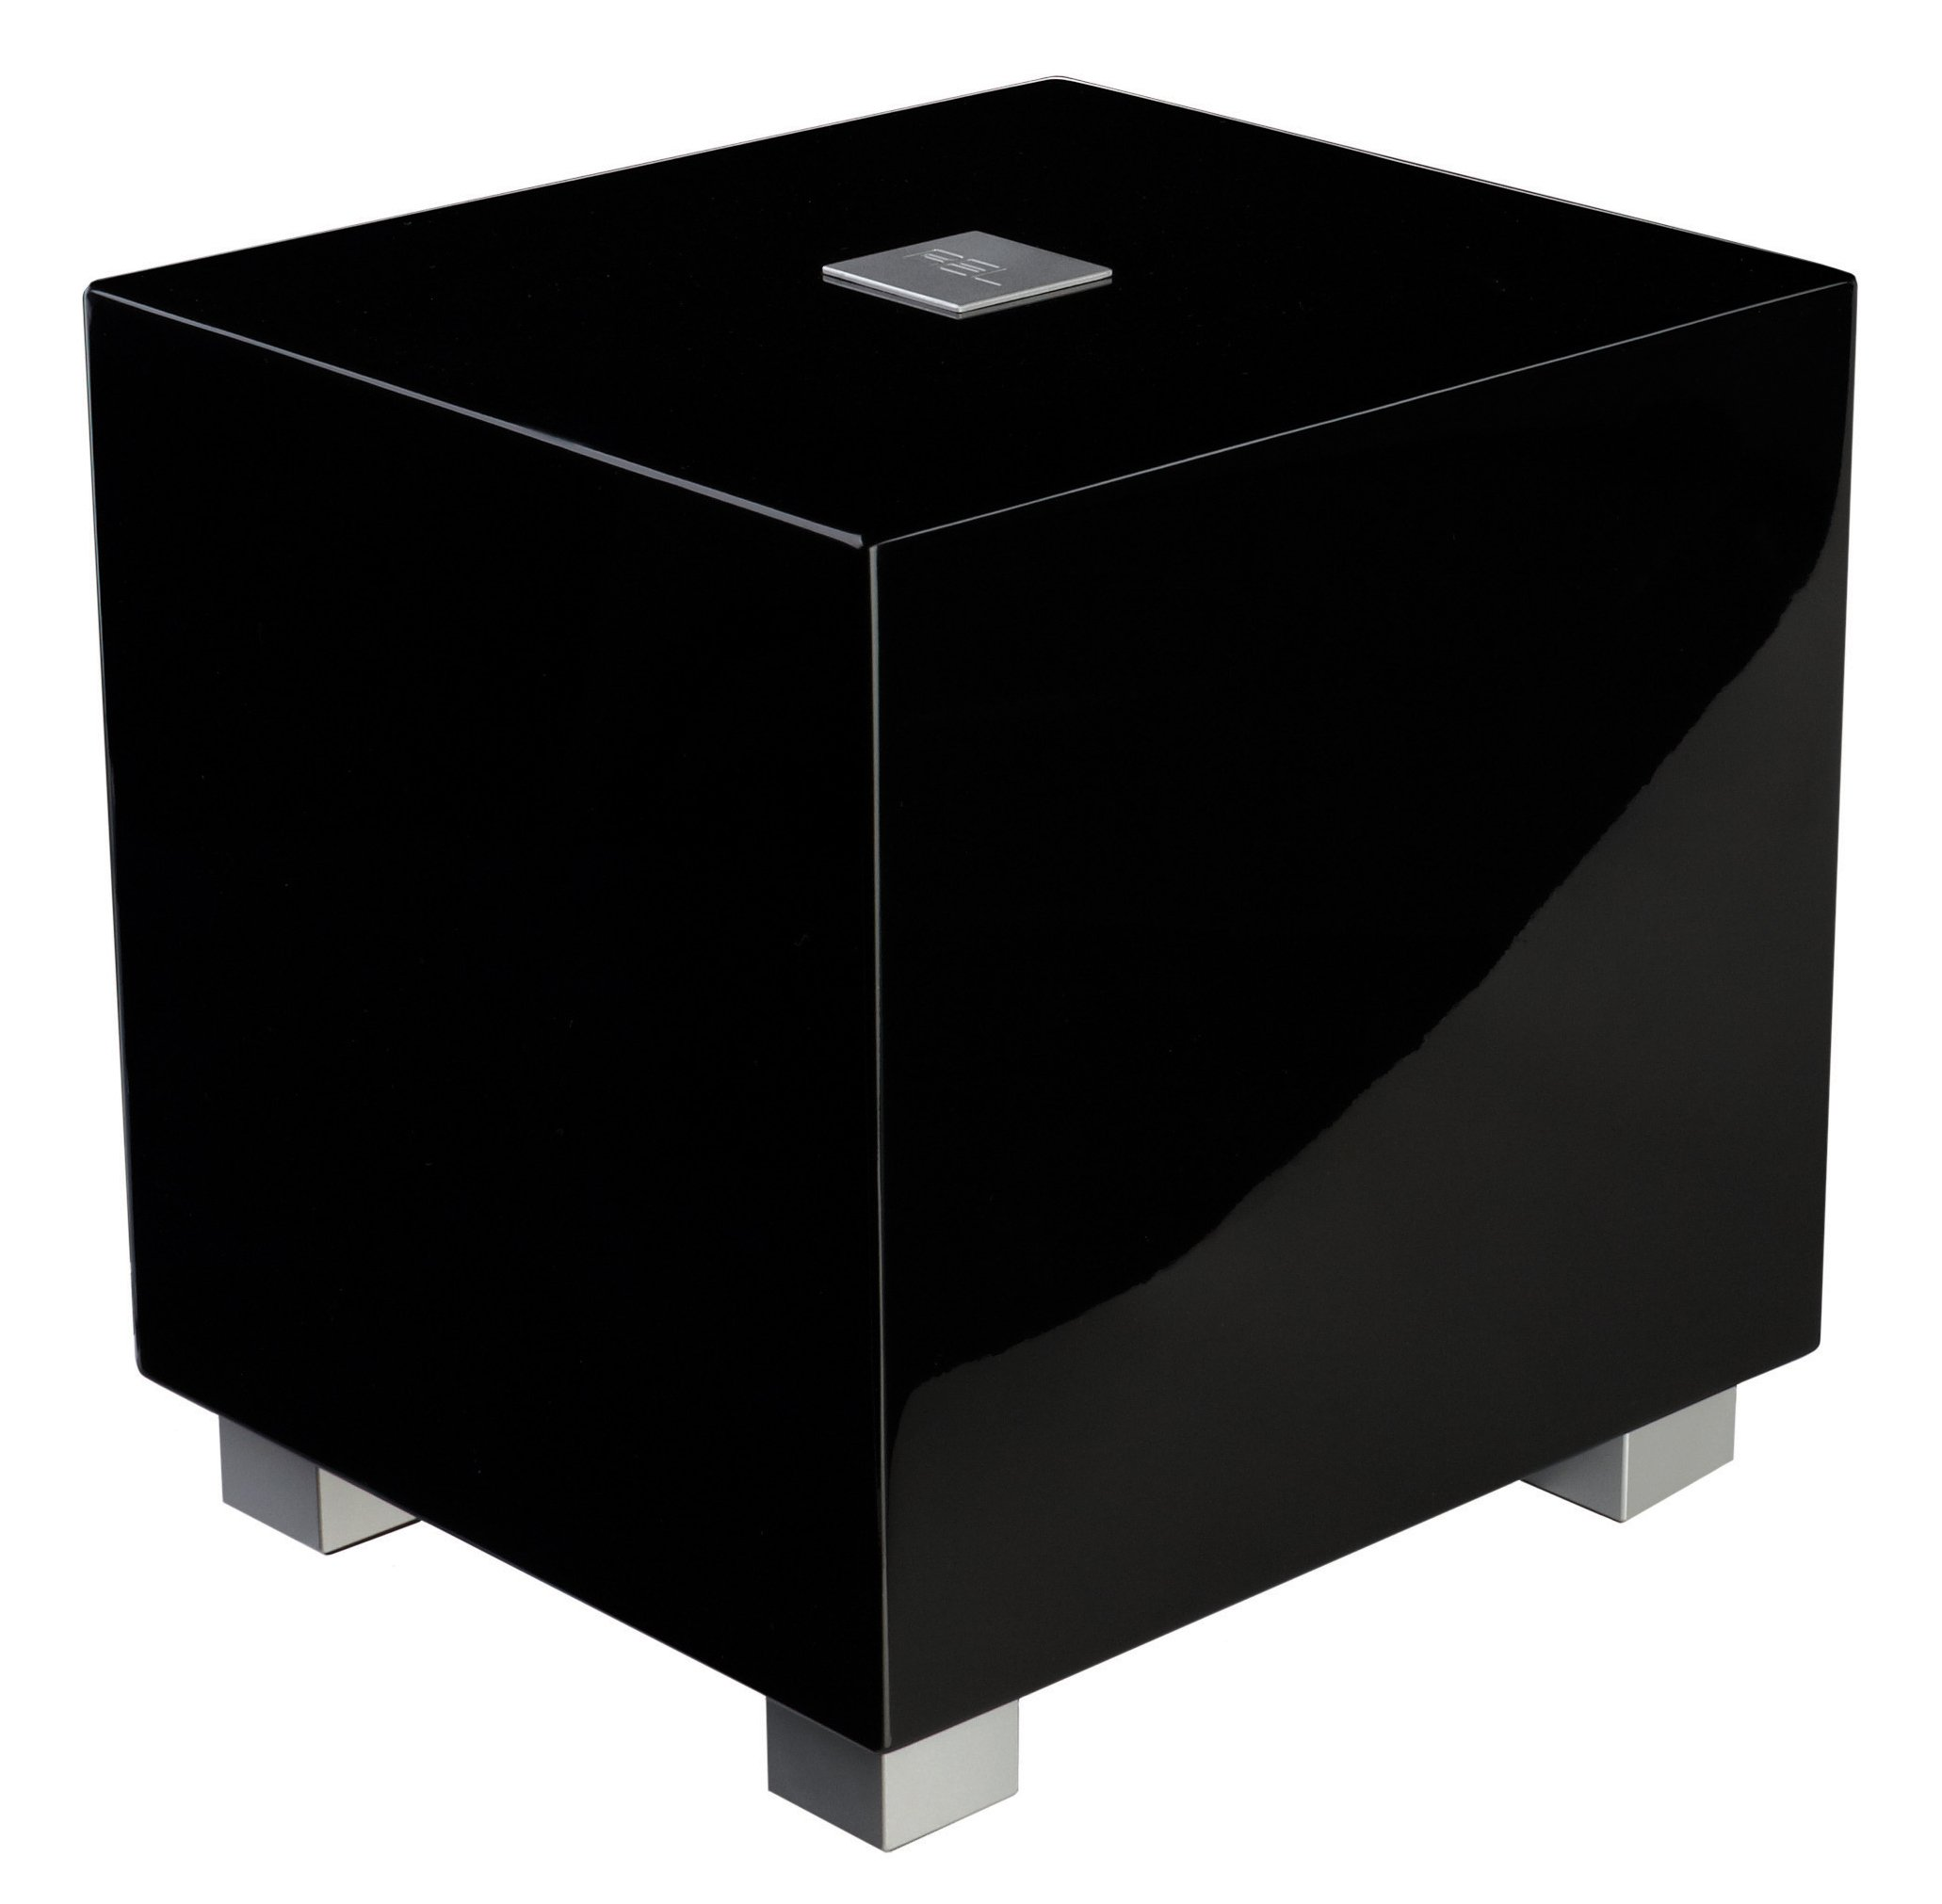 REL Acoustics T/Zero Subwoofer, 6.5 inch Down-Firing Driver, High Gloss Black